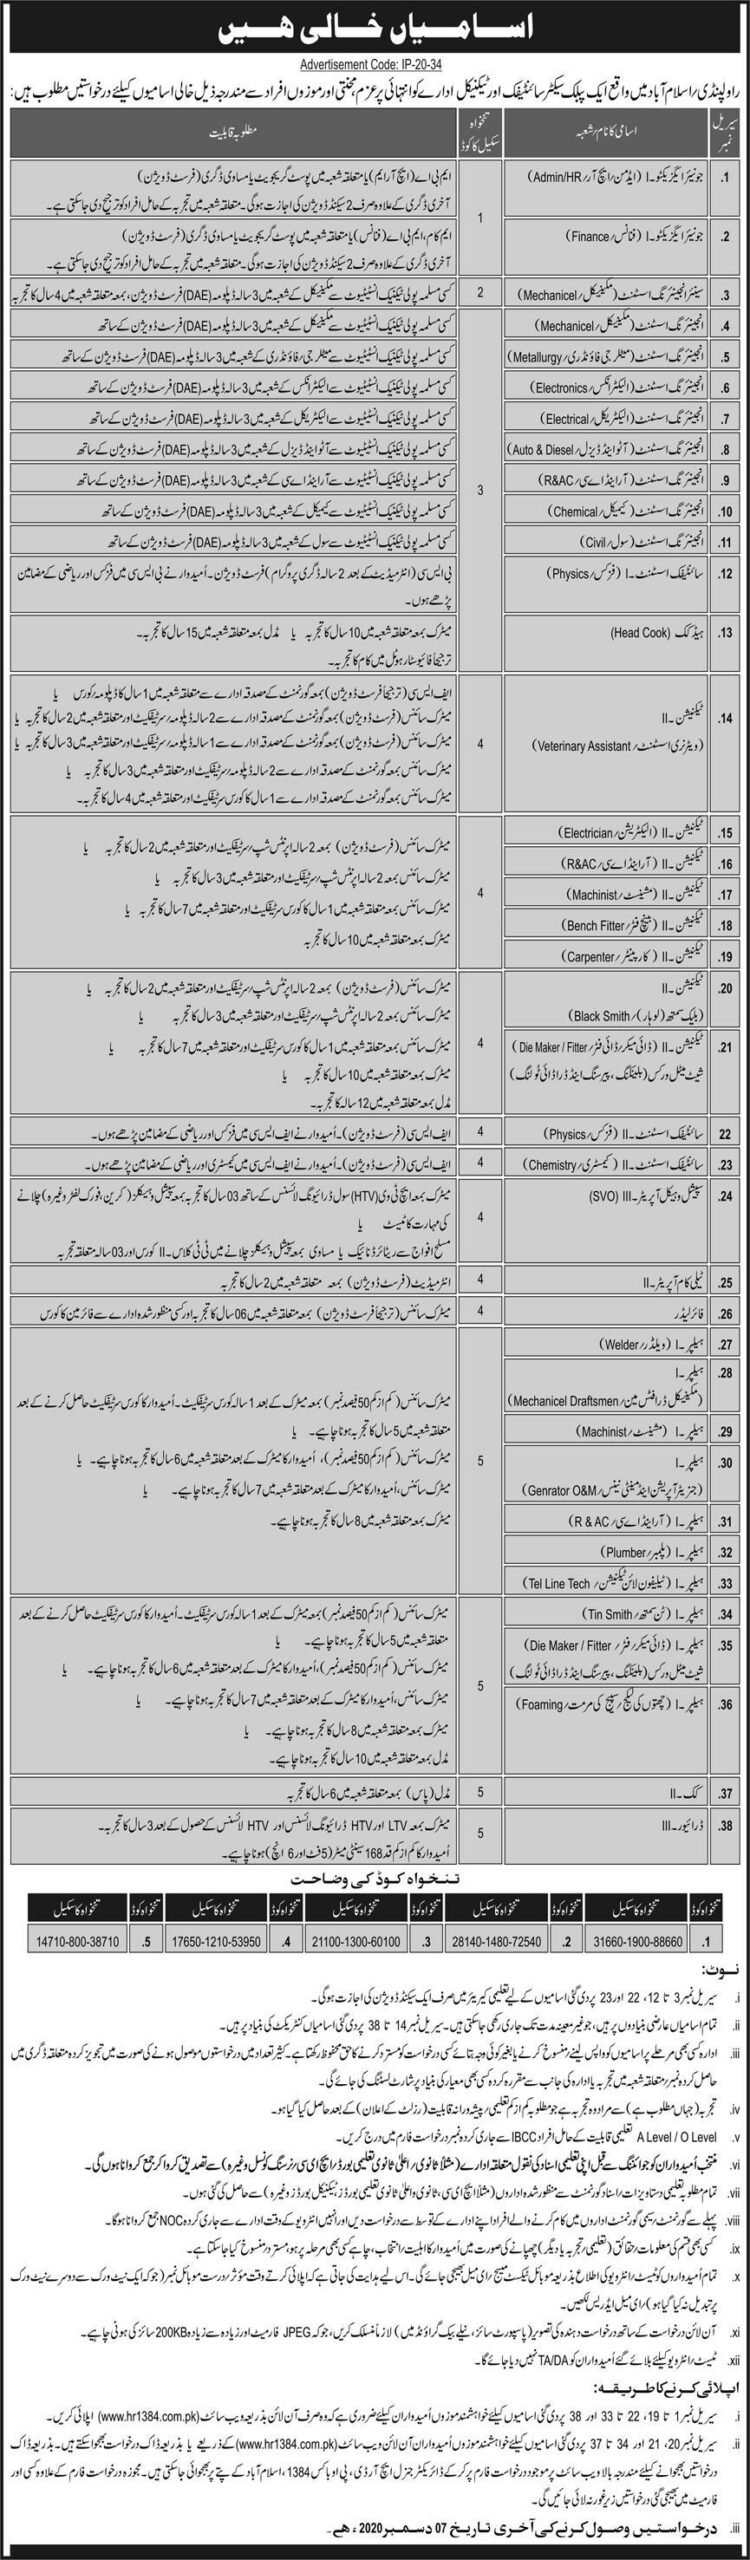 Pakistan atomic energy jobs 2020 Islamabad